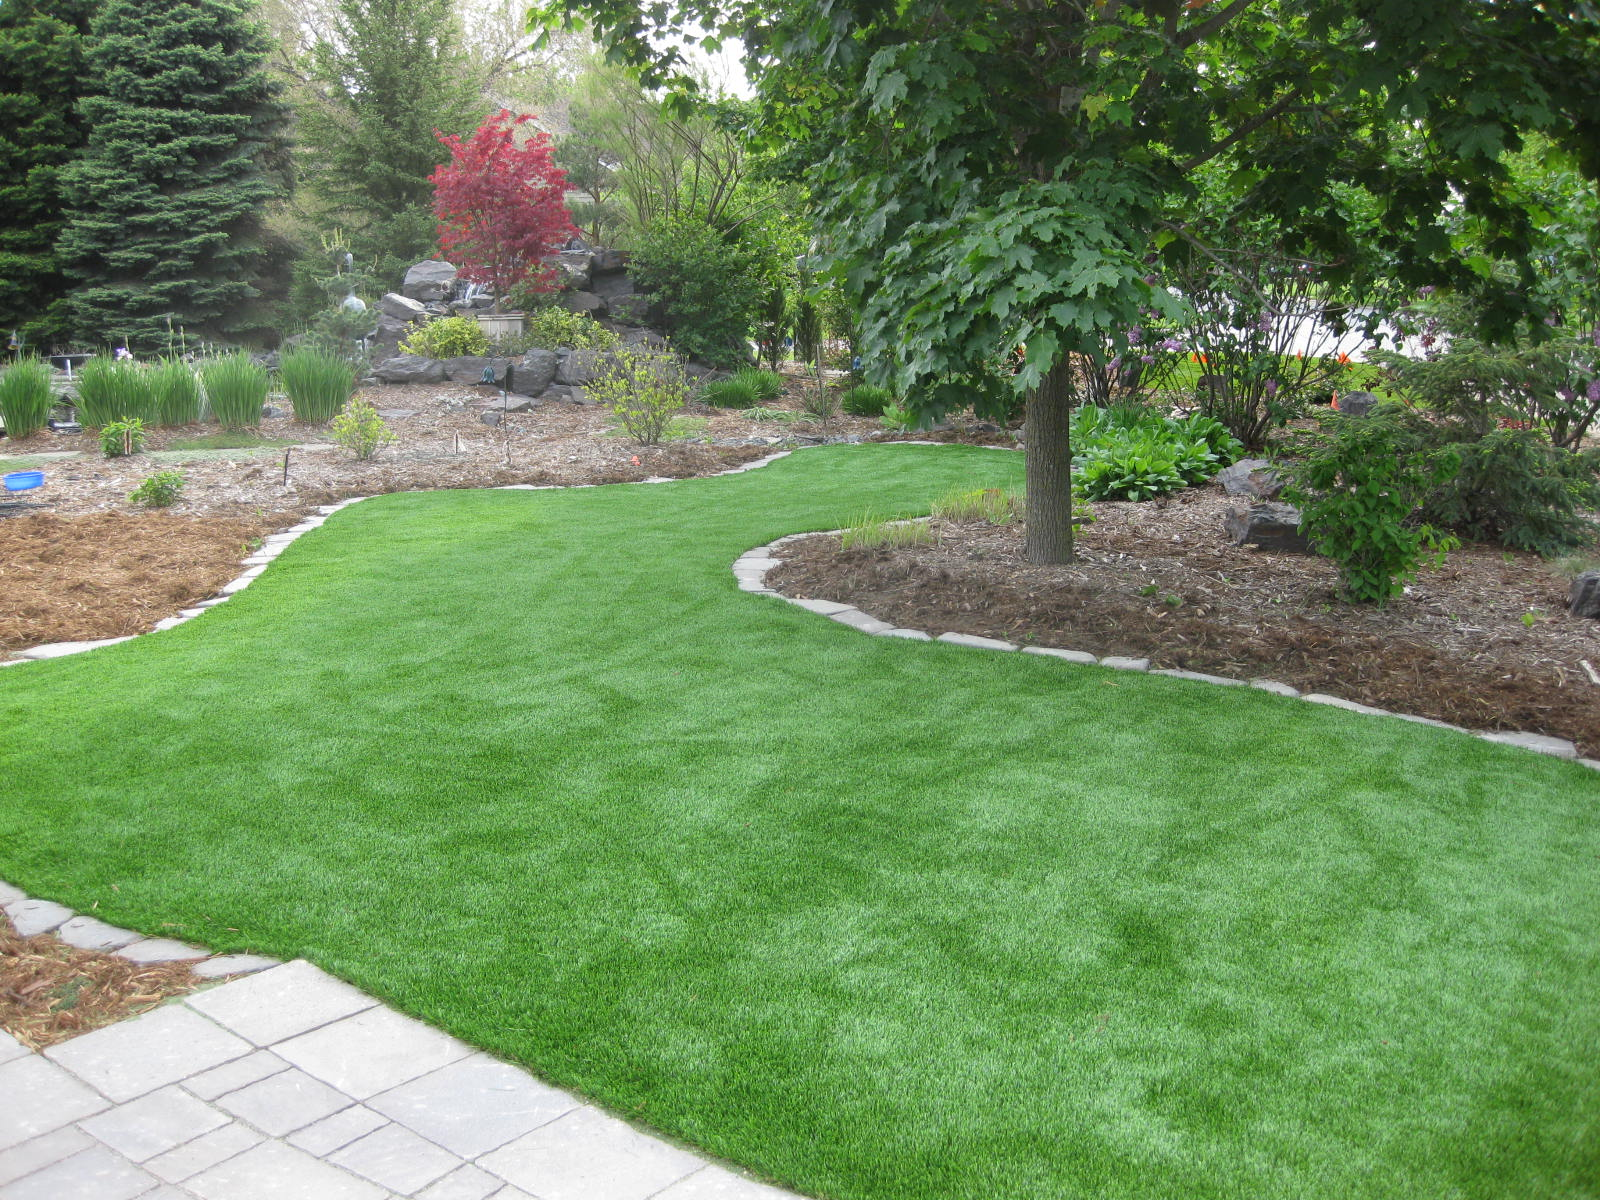 Tour Greens Virginia Artificial Grass Lawns Synthetic Turf